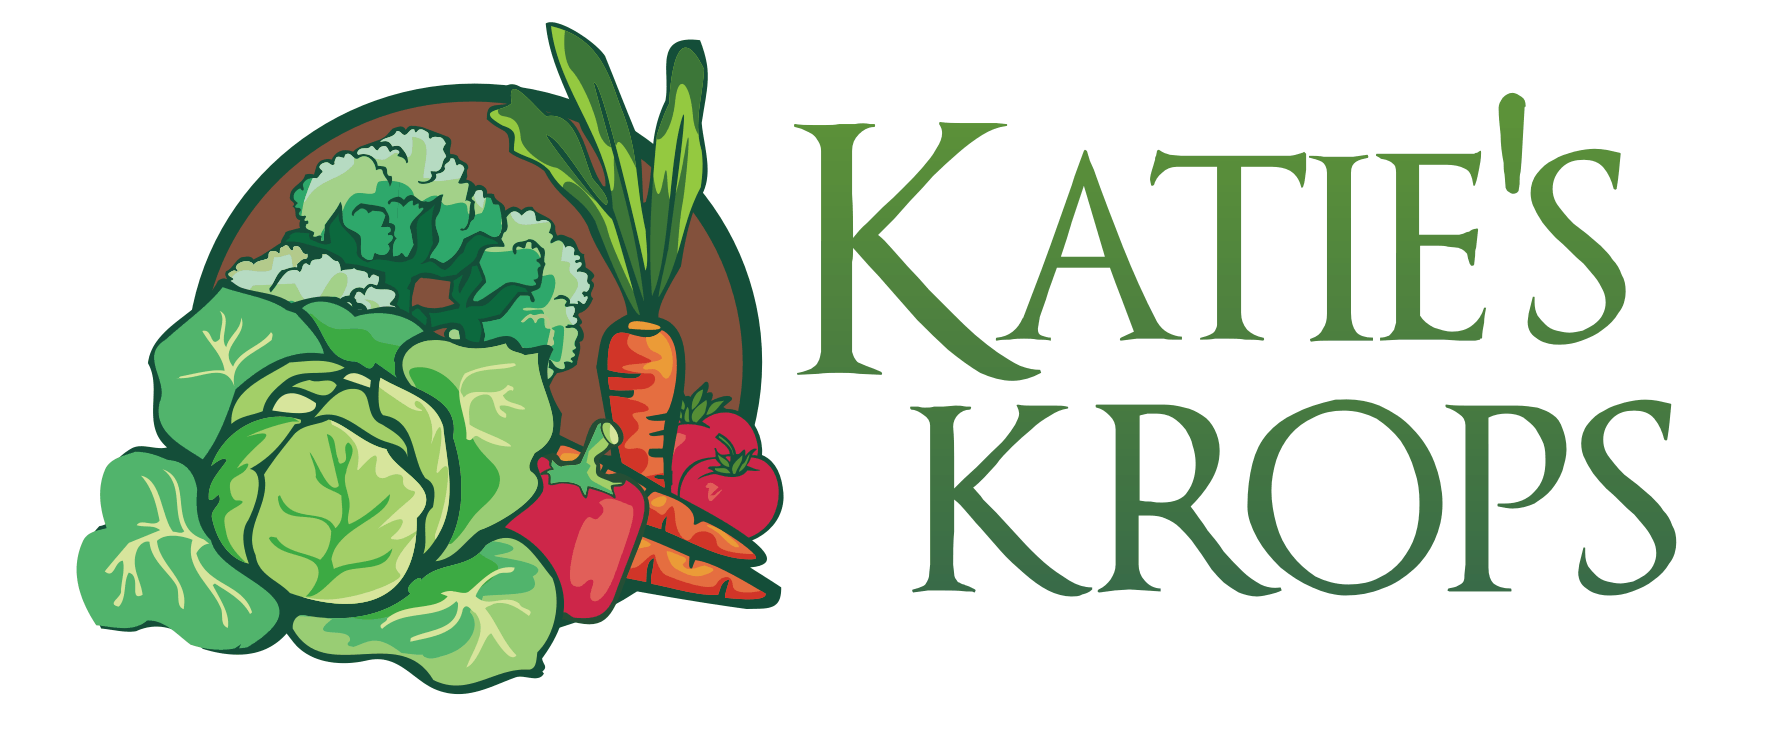 We're a proud support of Katie's Krops and the mission to end hunger one vegetable garden at a time. http://www.katieskrops.com/supporters.html